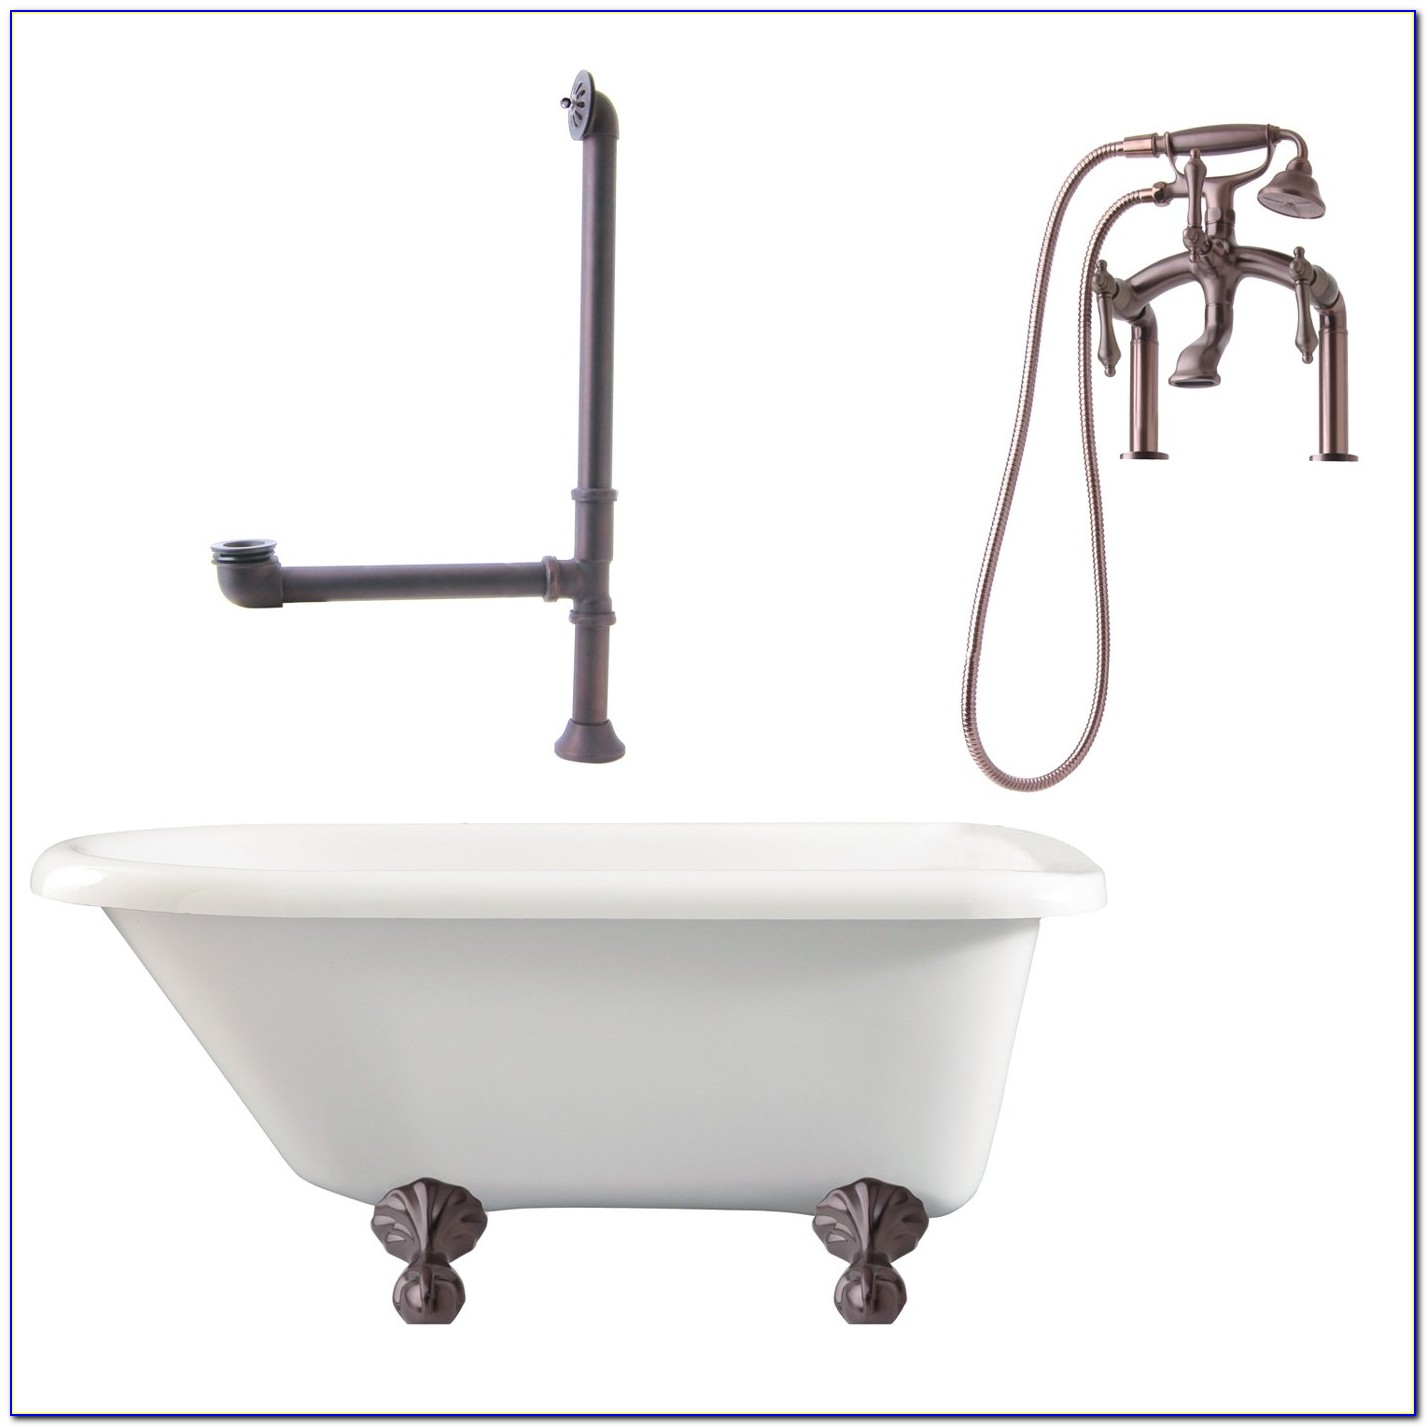 Freestanding Tub With Faucet Mount